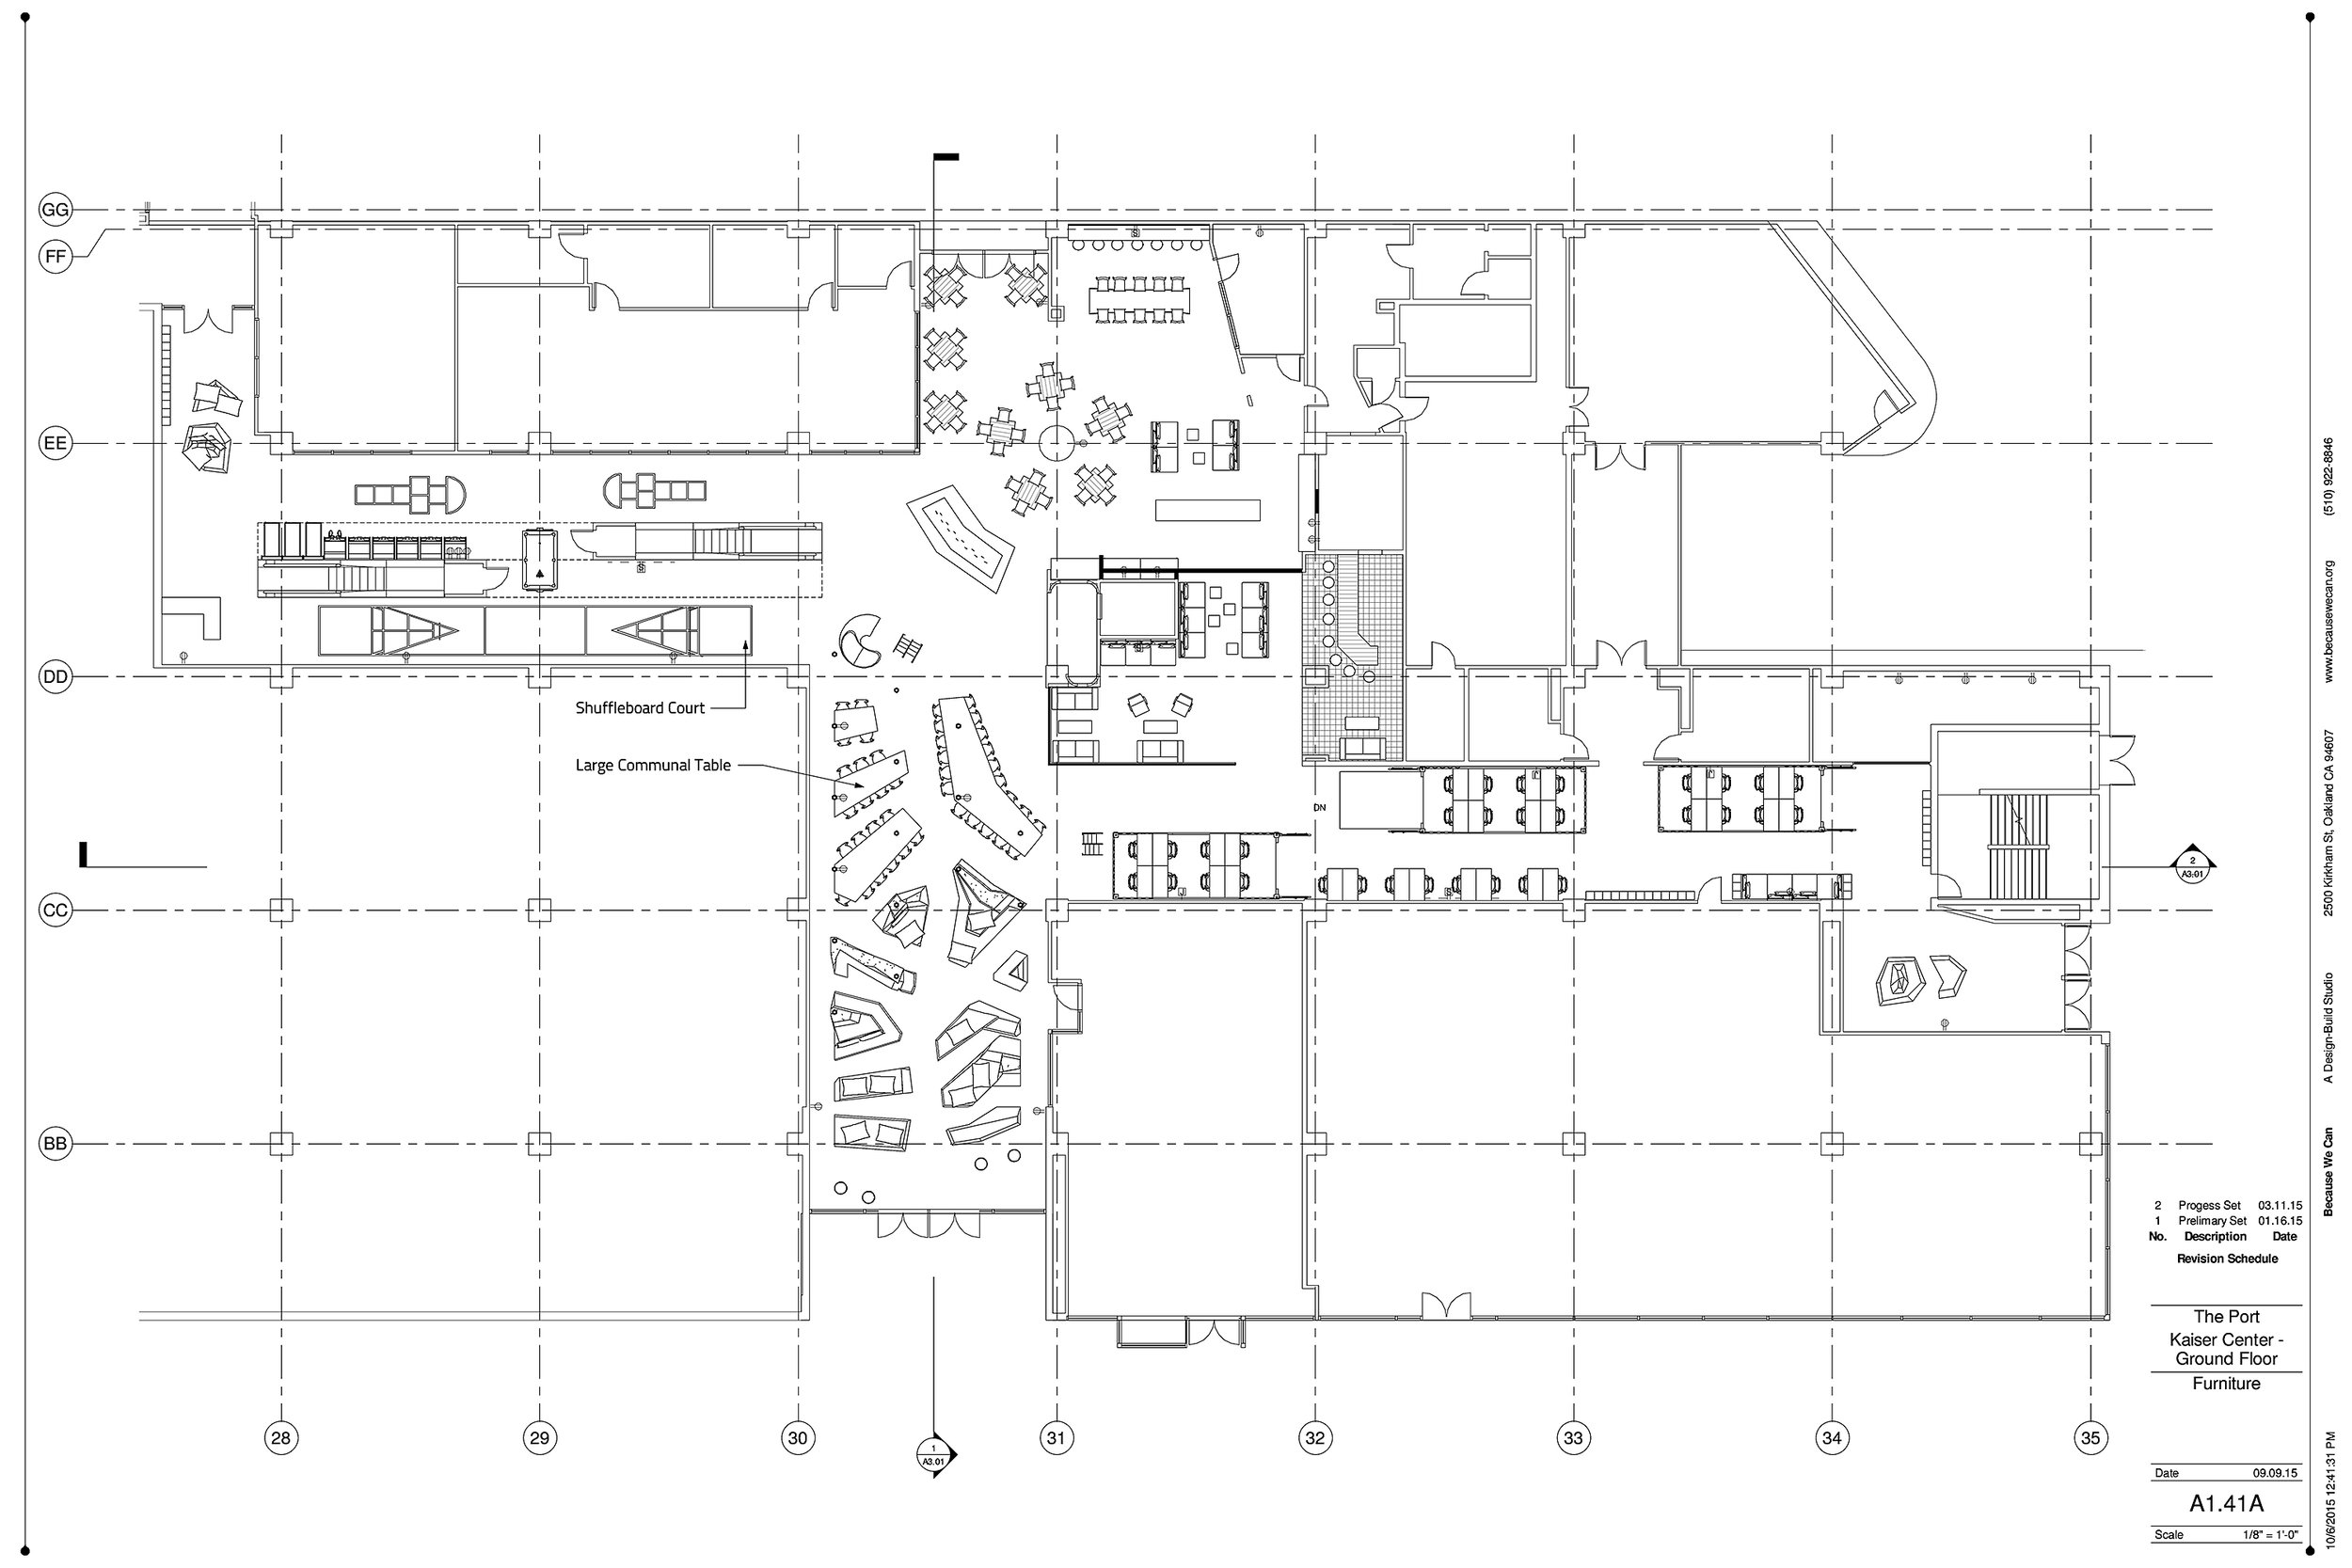 The floor plan of the first floor. From this image it is easy to see how large the space is. We fit 3 shipping containers in just one of the hallways of this floor.